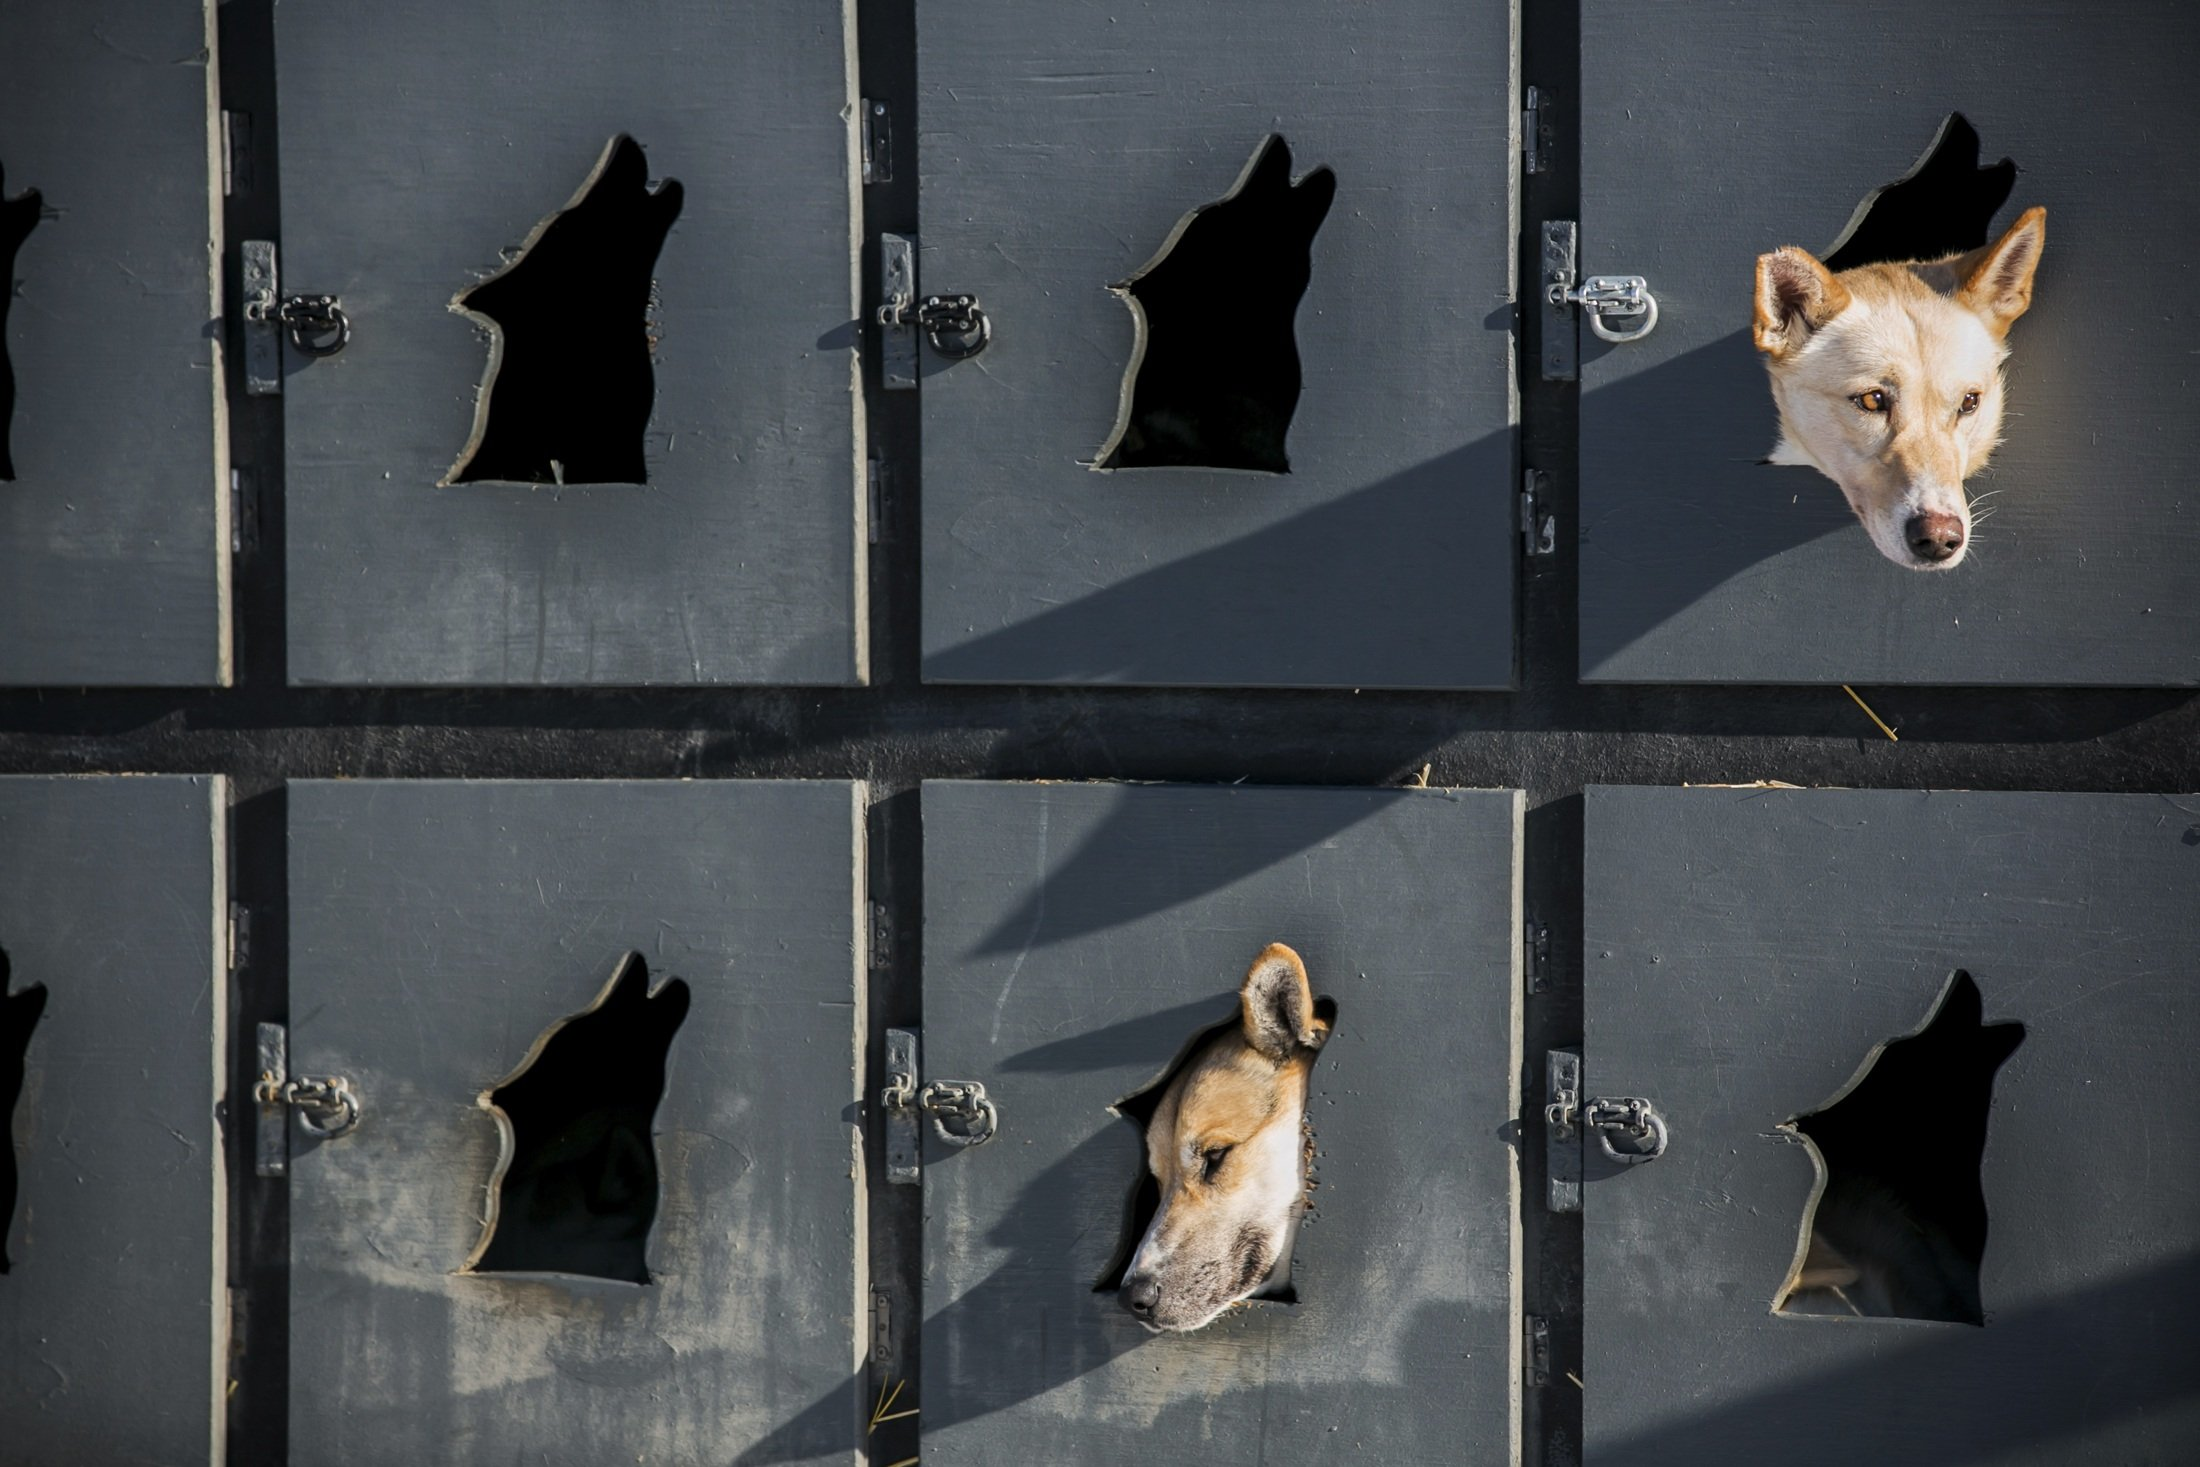 Justin Savidis dogs await lineup in the musher lot before the official restart of the nearly 1,000-mile Iditarod Trail Sled Dog Race in Willow, Alaska, March 2, 2014, which commemorates a 1925 rescue mission that carried diphtheria serum by sled-dog relay to the coastal community of Nome, the final destination.